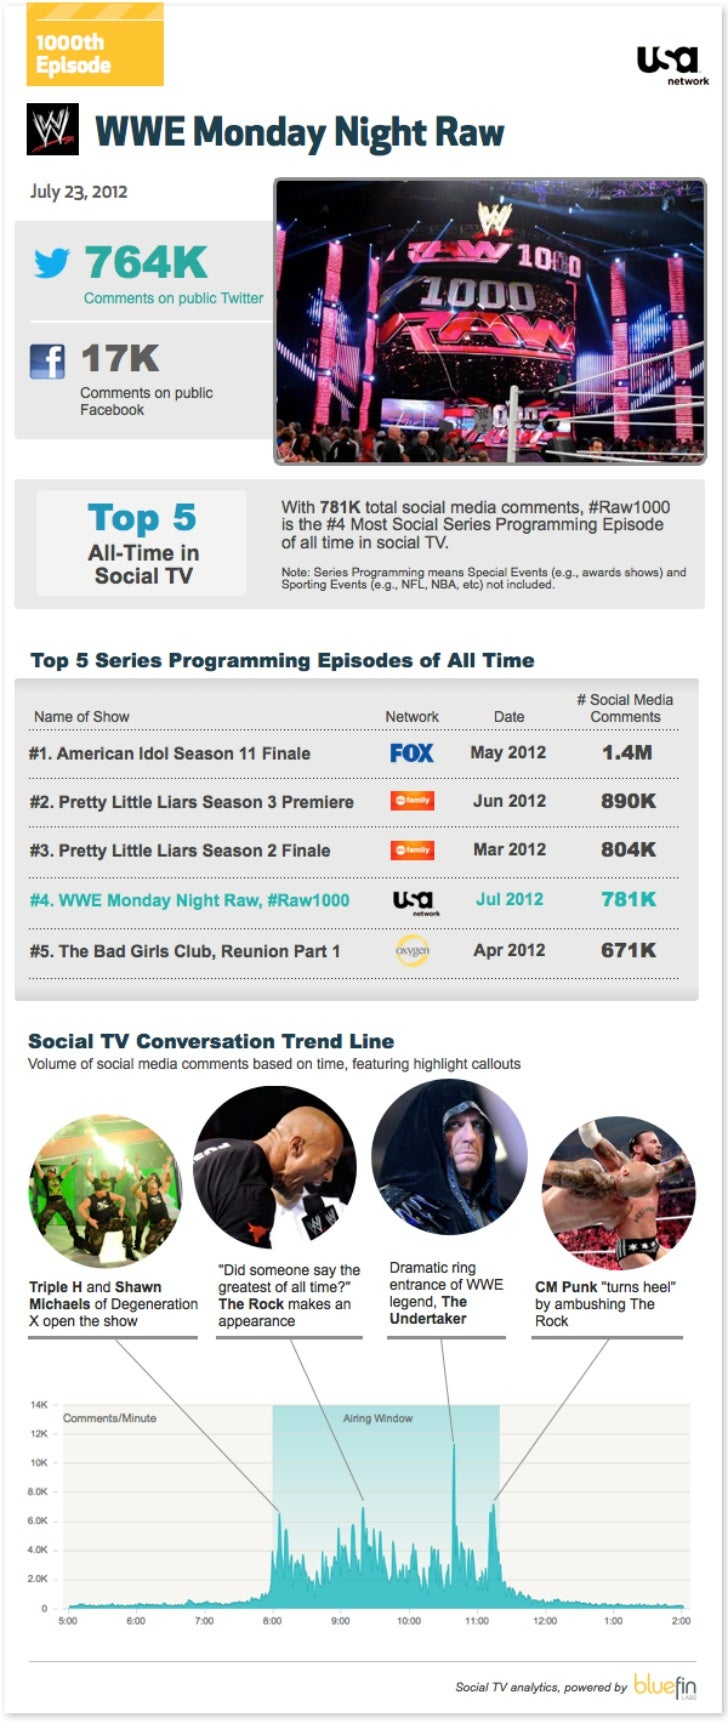 Social TV Data for WWE Monday Night Raw, 1000th Episode - Bluefin Labs